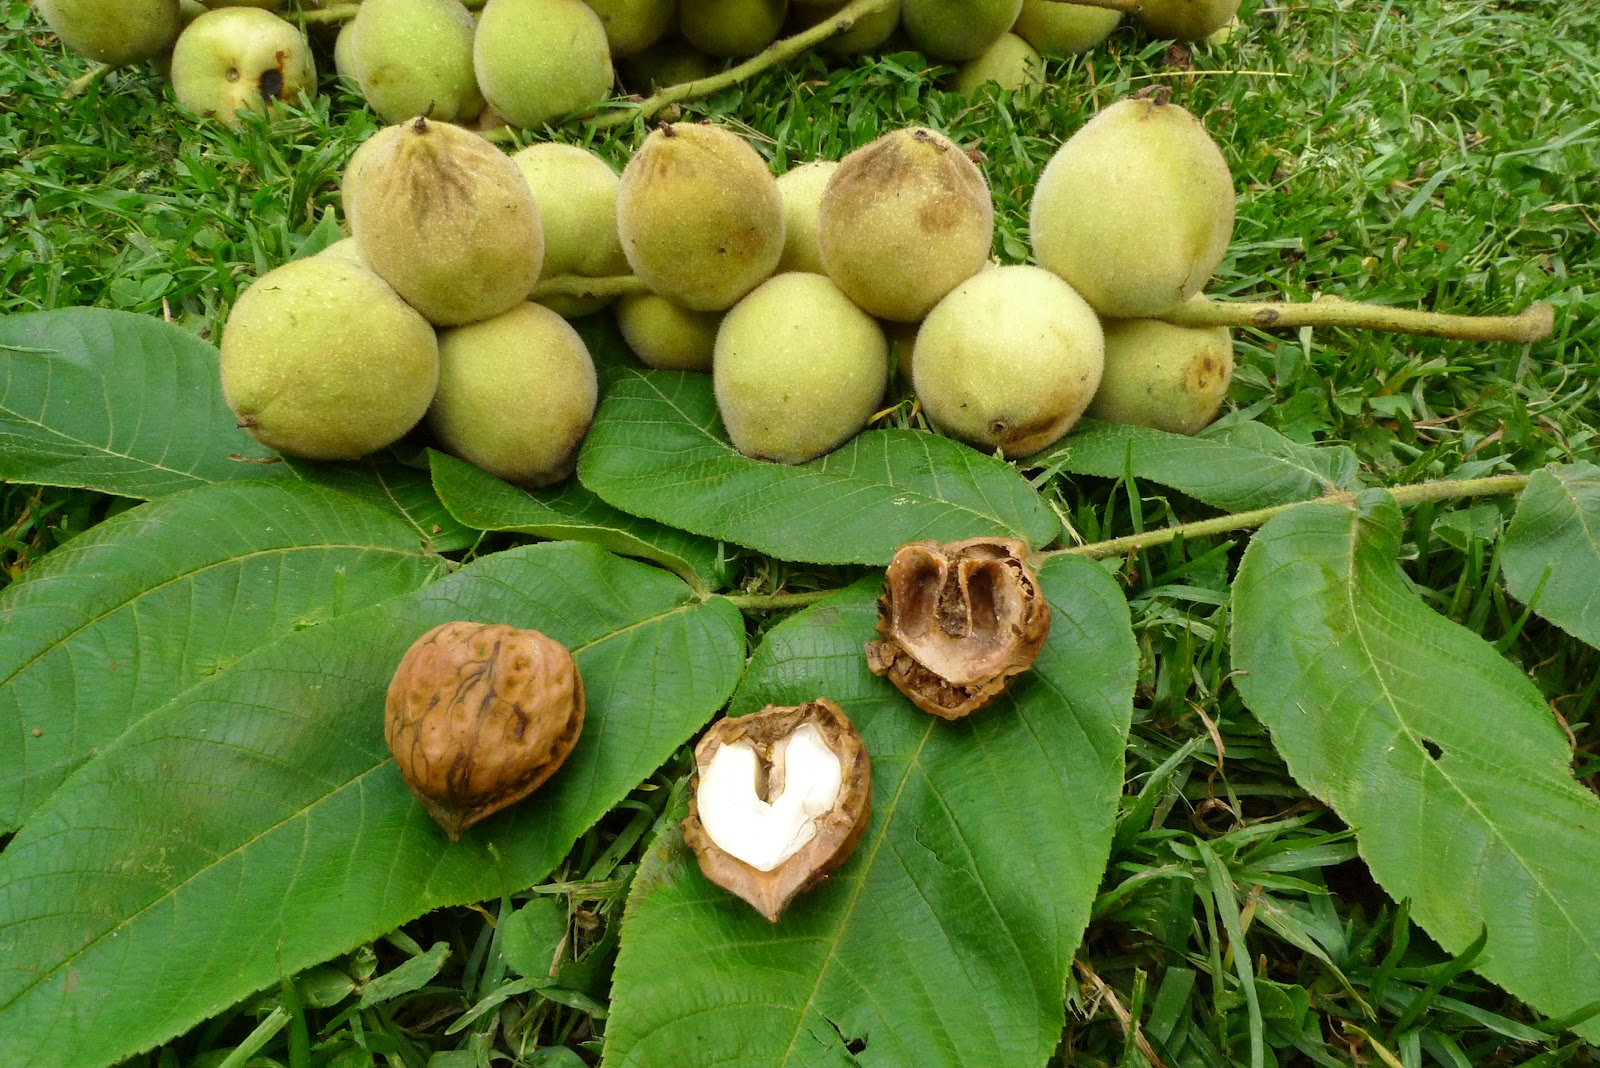 Walnut Identification Images - Reverse Search